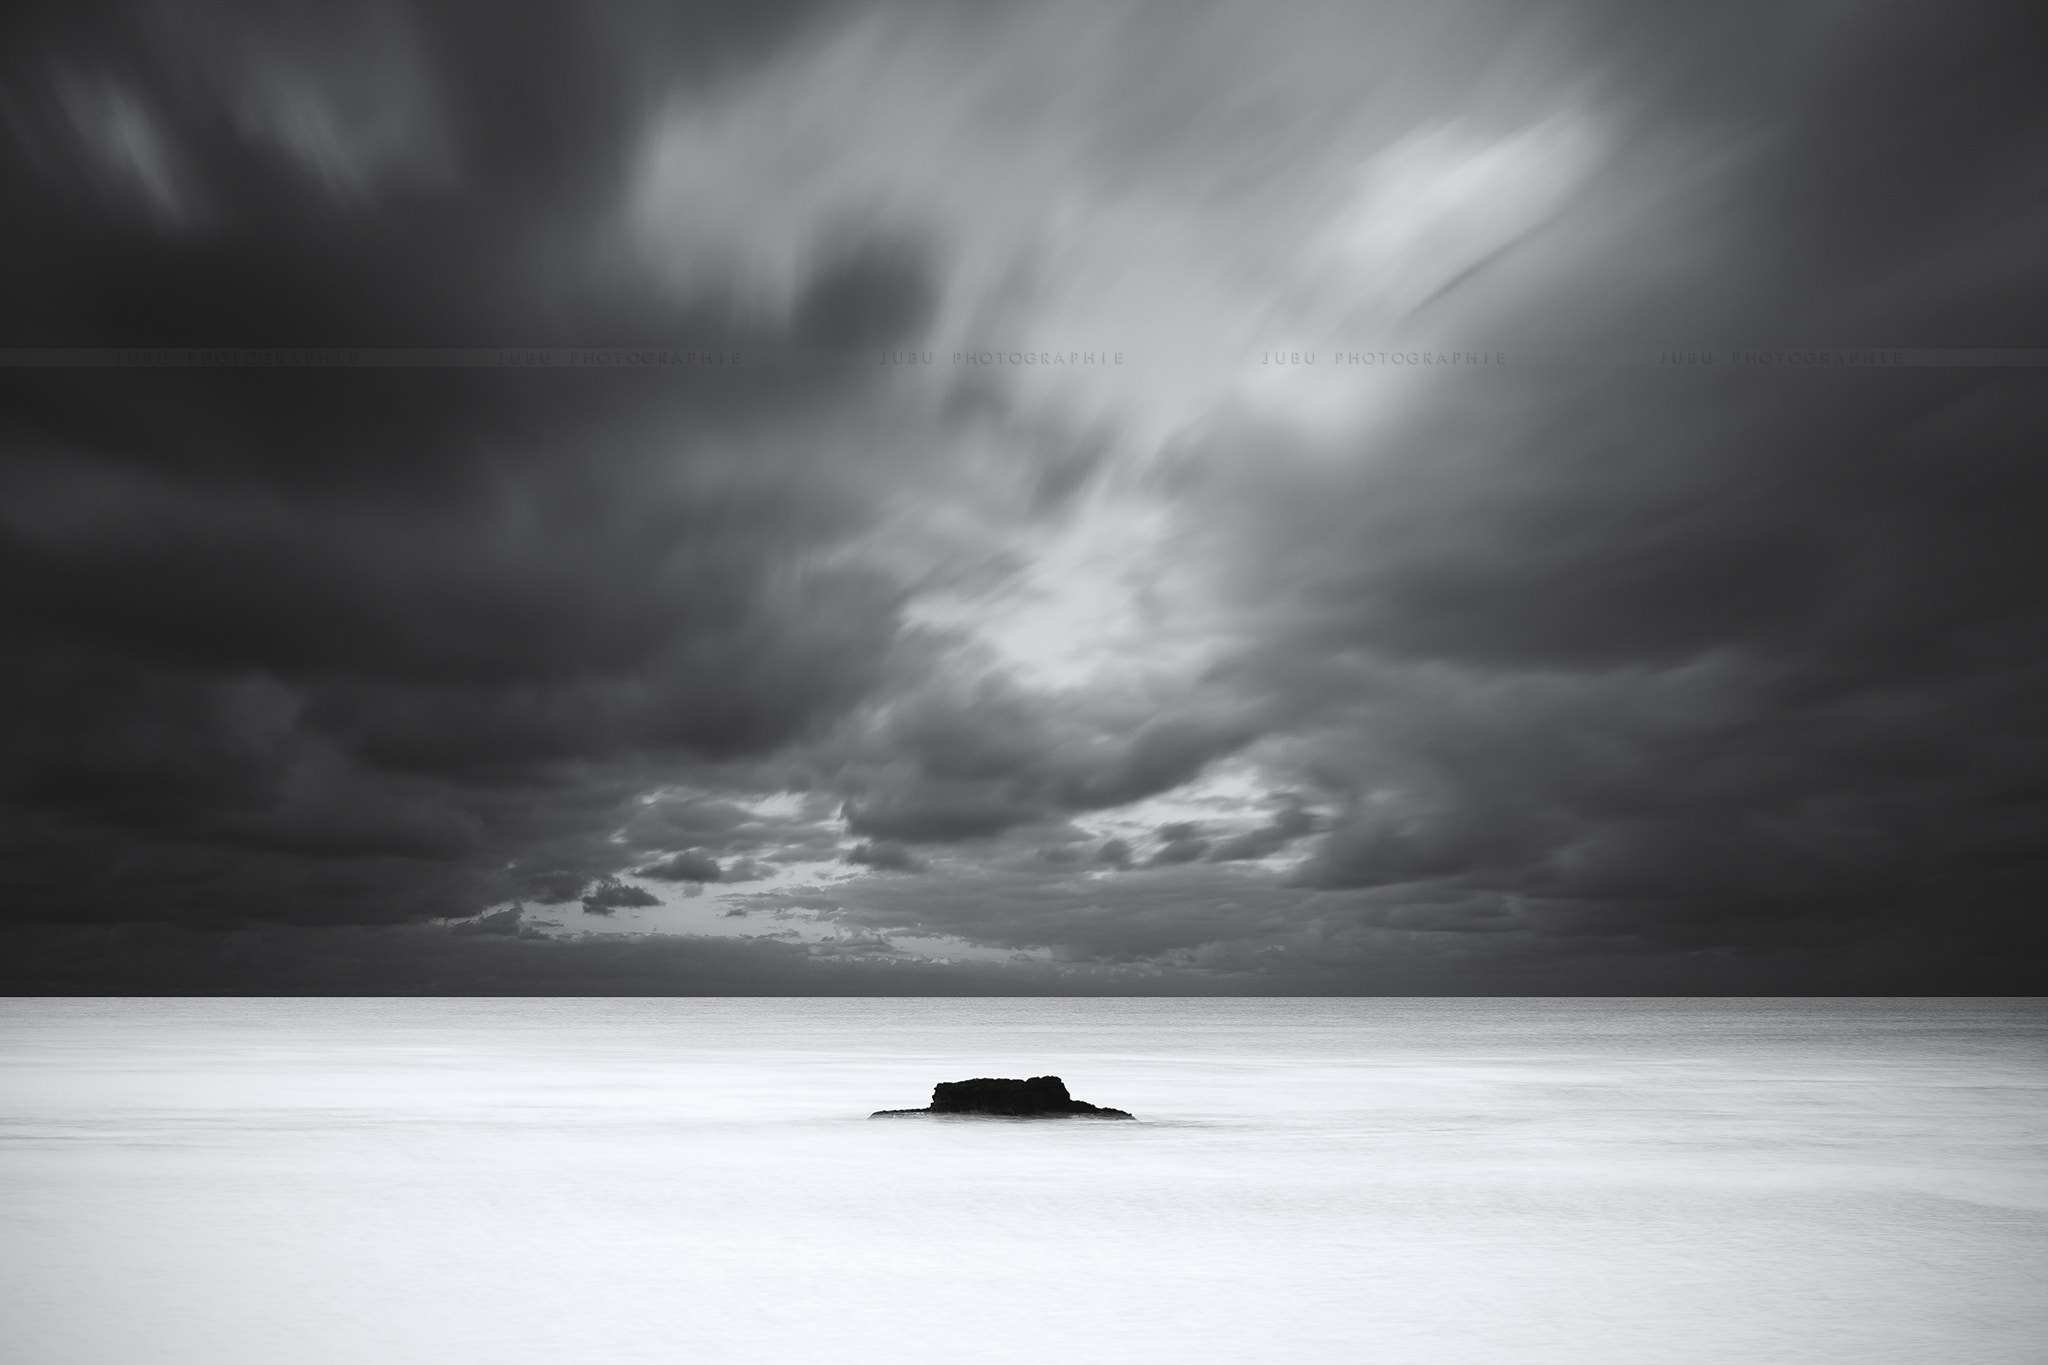 Photograph • Alone in the Sea • by Jubu Photographie on 500px